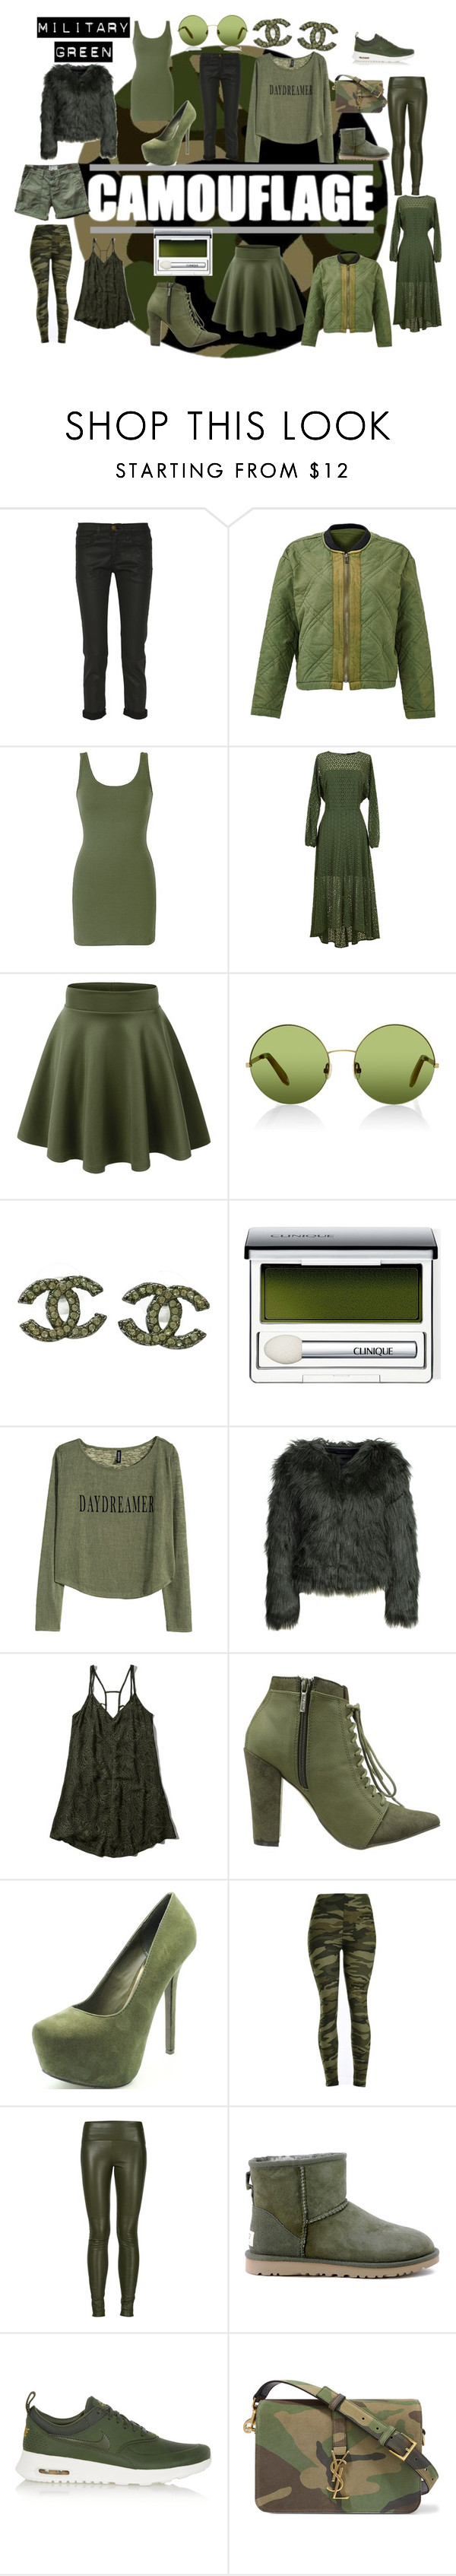 """Military Green"" by deannastraub ❤ liked on Polyvore featuring Current/Elliott, Free People, BKE core, TIBI, Victoria, Victoria Beckham, Chanel, Clinique, H&M, ONLY and Abercrombie & Fitch"